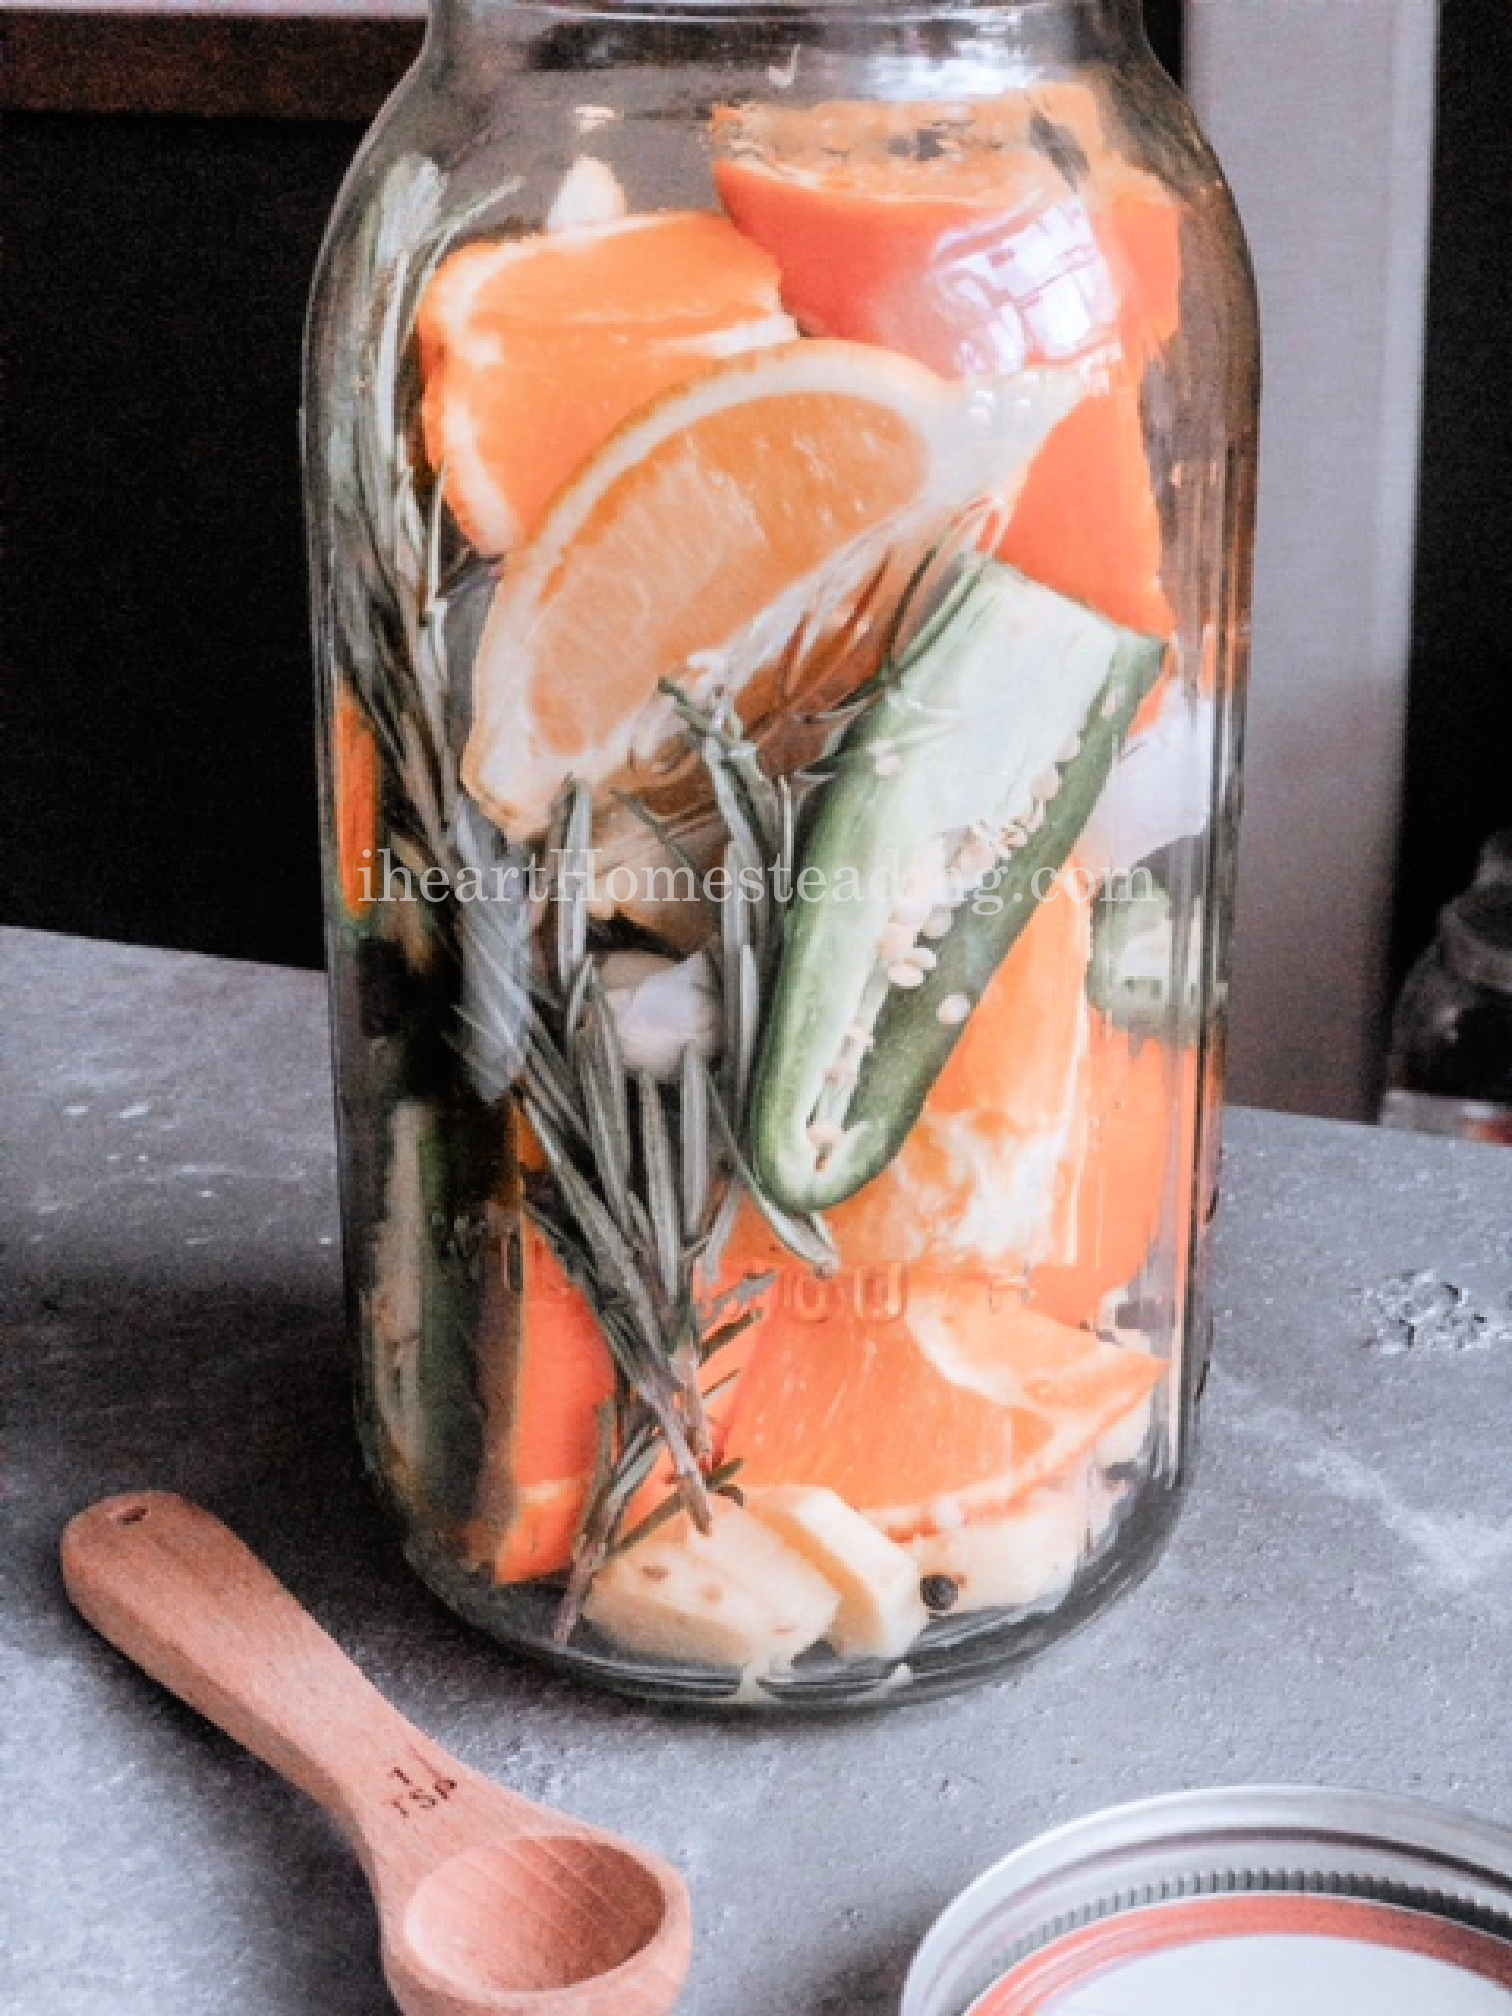 How to make immunity boosting FIRE CIDER tonic perfect for fighting off cold and flu season